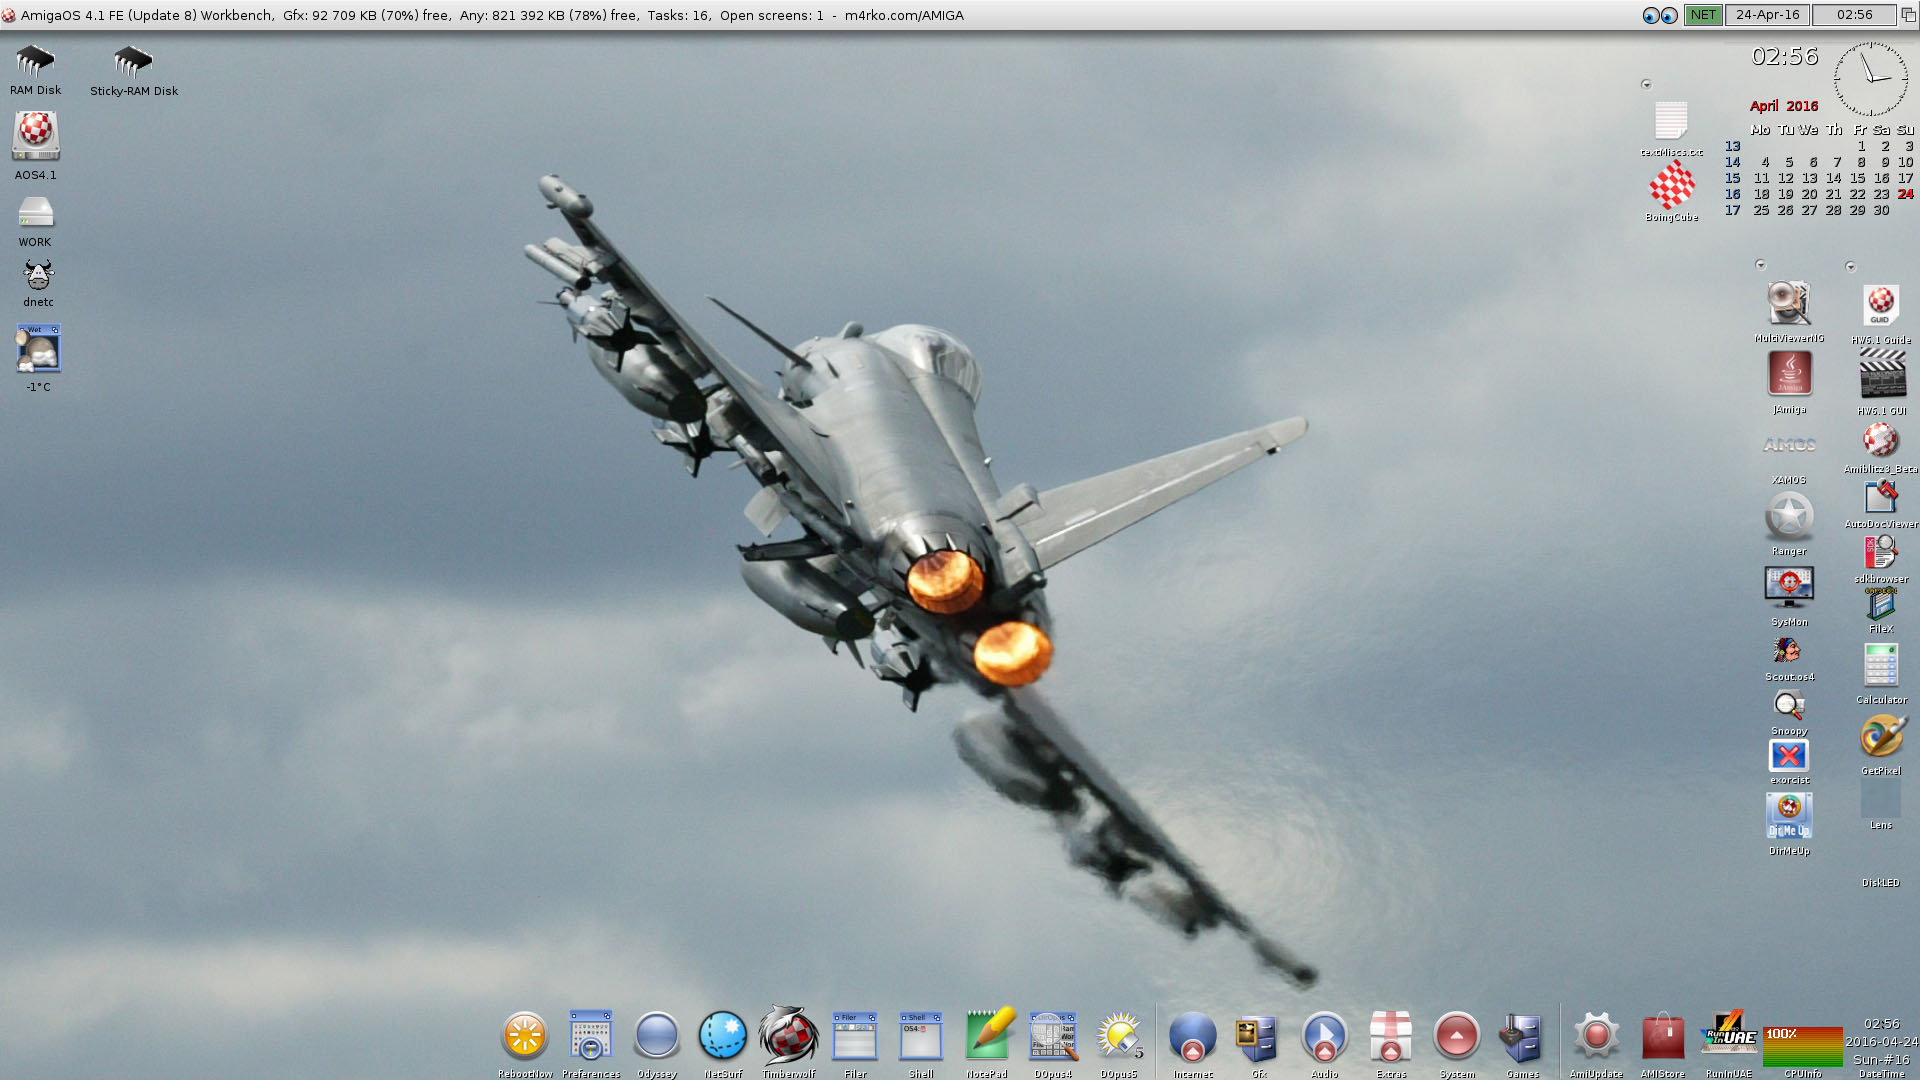 AmigaOS 4.1 FE Workbench-Eurofighter Typhoon